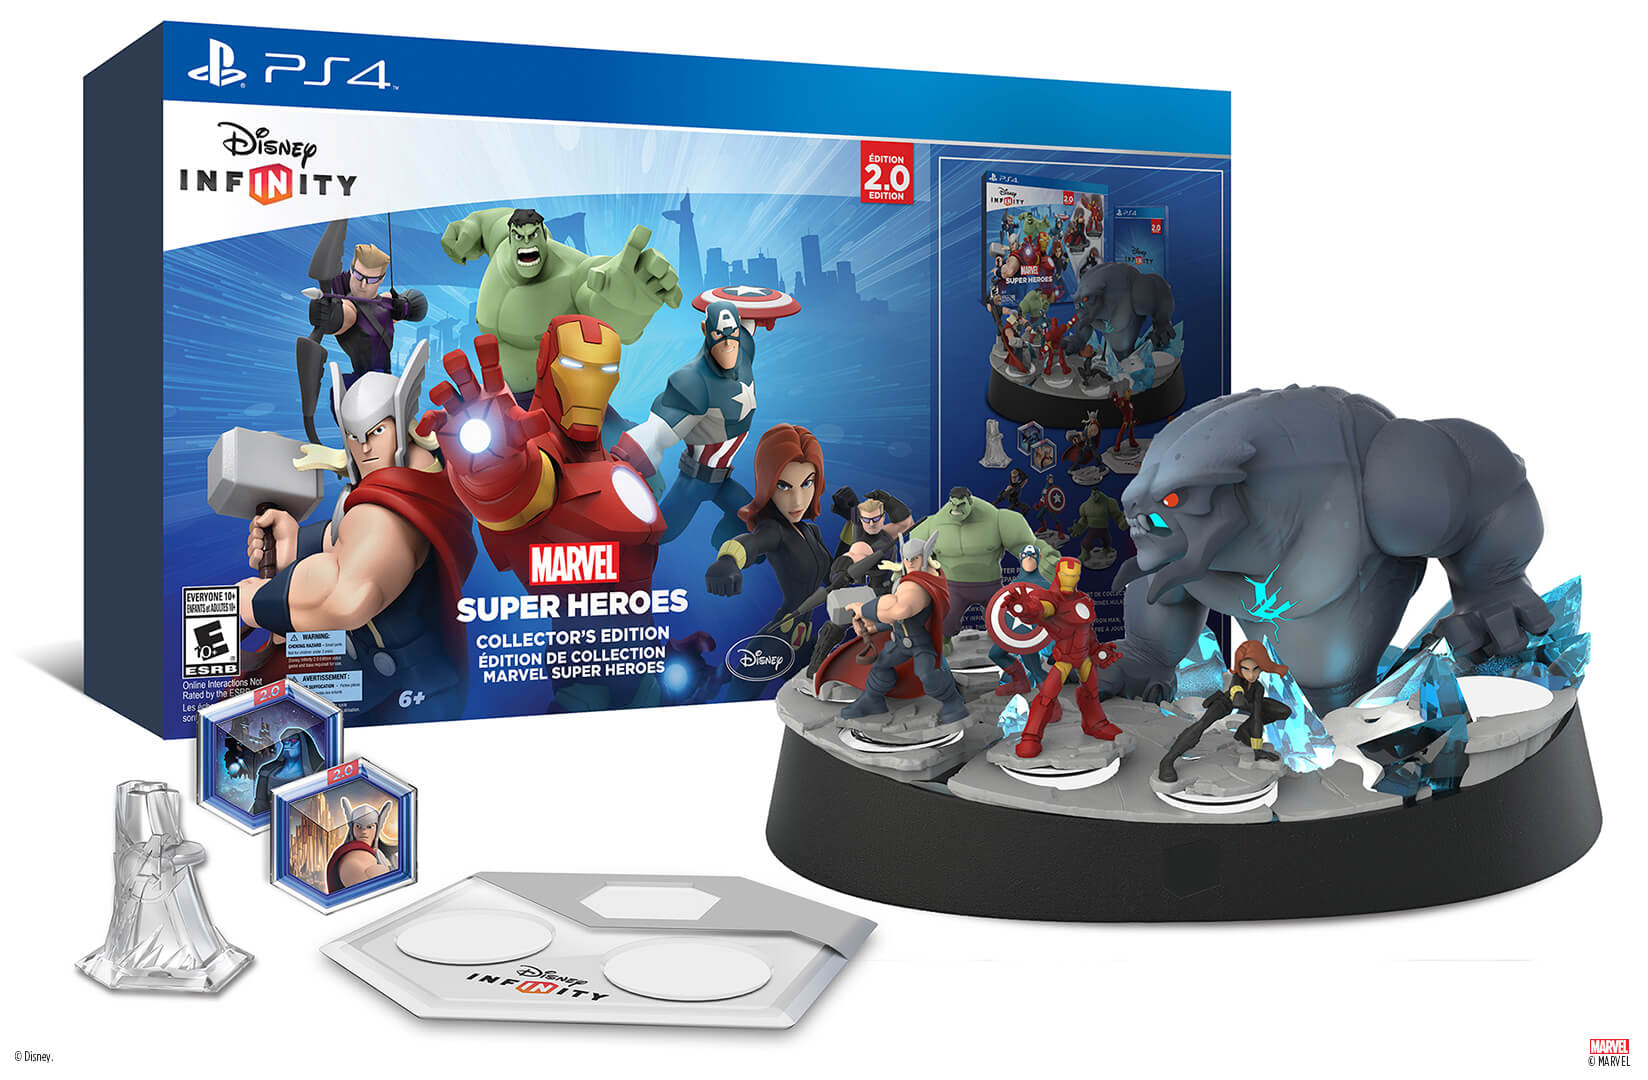 The Disney Infinity: Marvel Super Heroes (2.0 Edition) Collector's